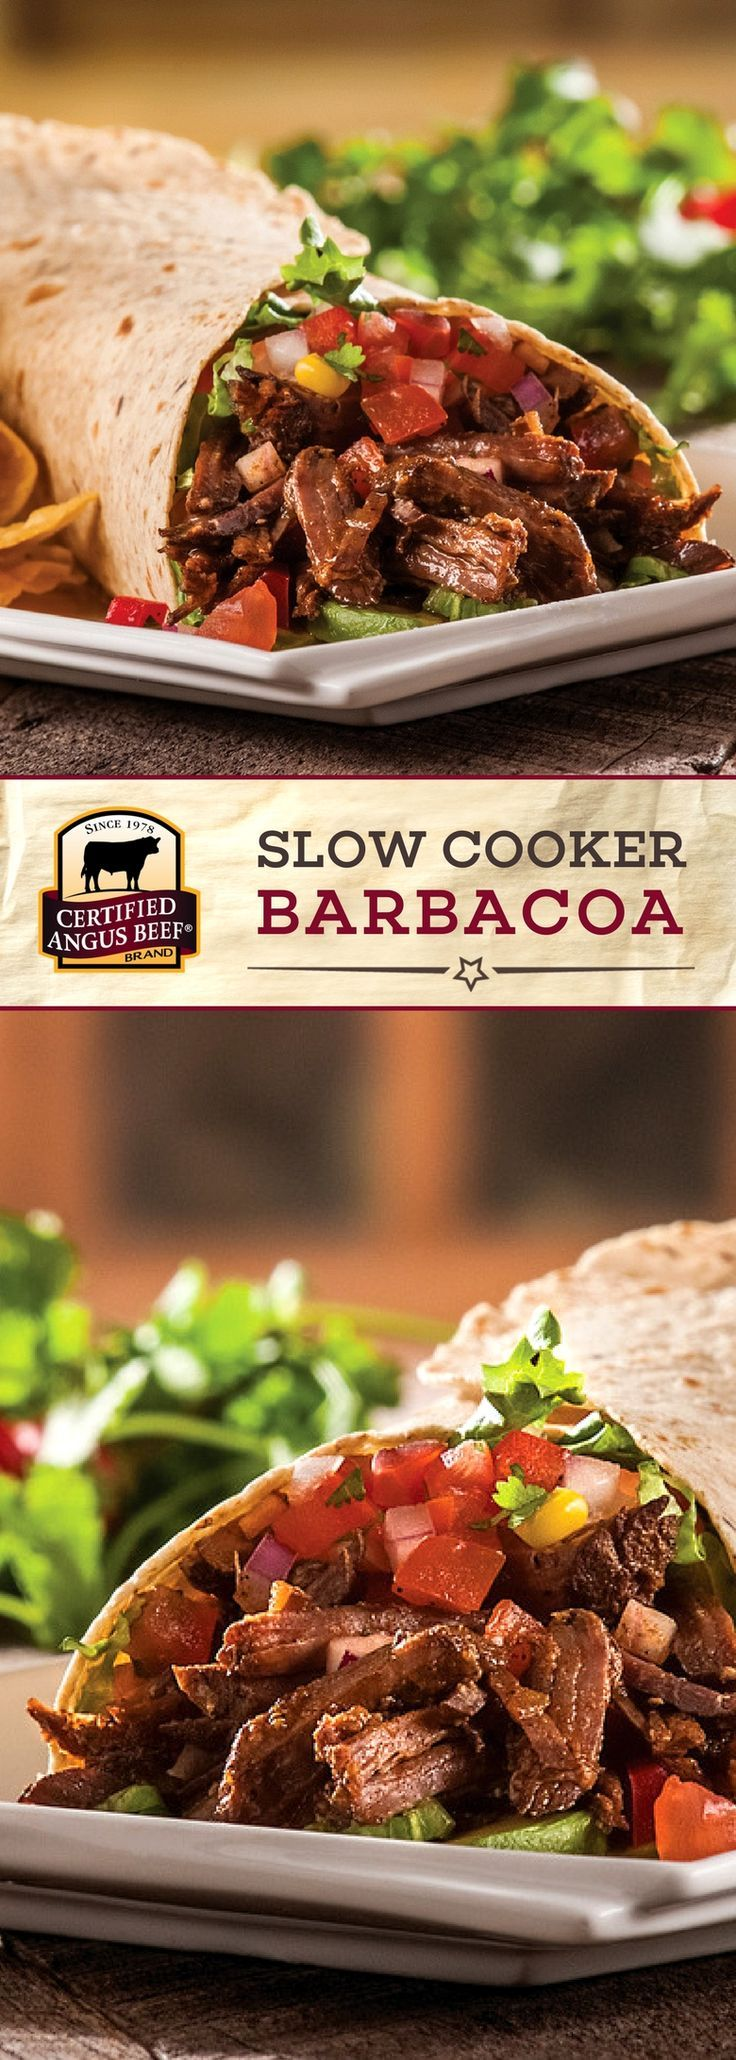 Certified Angus Beef®️️️ brand Slow Cooker Barbacoa is an EASY recipe that you can make in your SLOW cooker with delicious shoulder roast! Cinnamon, allspice, cumin, oregano and coffee make this a FRAGRANT and deeply flavorful beef recipe!   #bestangusbeef #certifiedangusbeef #beefrecipe #easyrecipes #tacotuesday